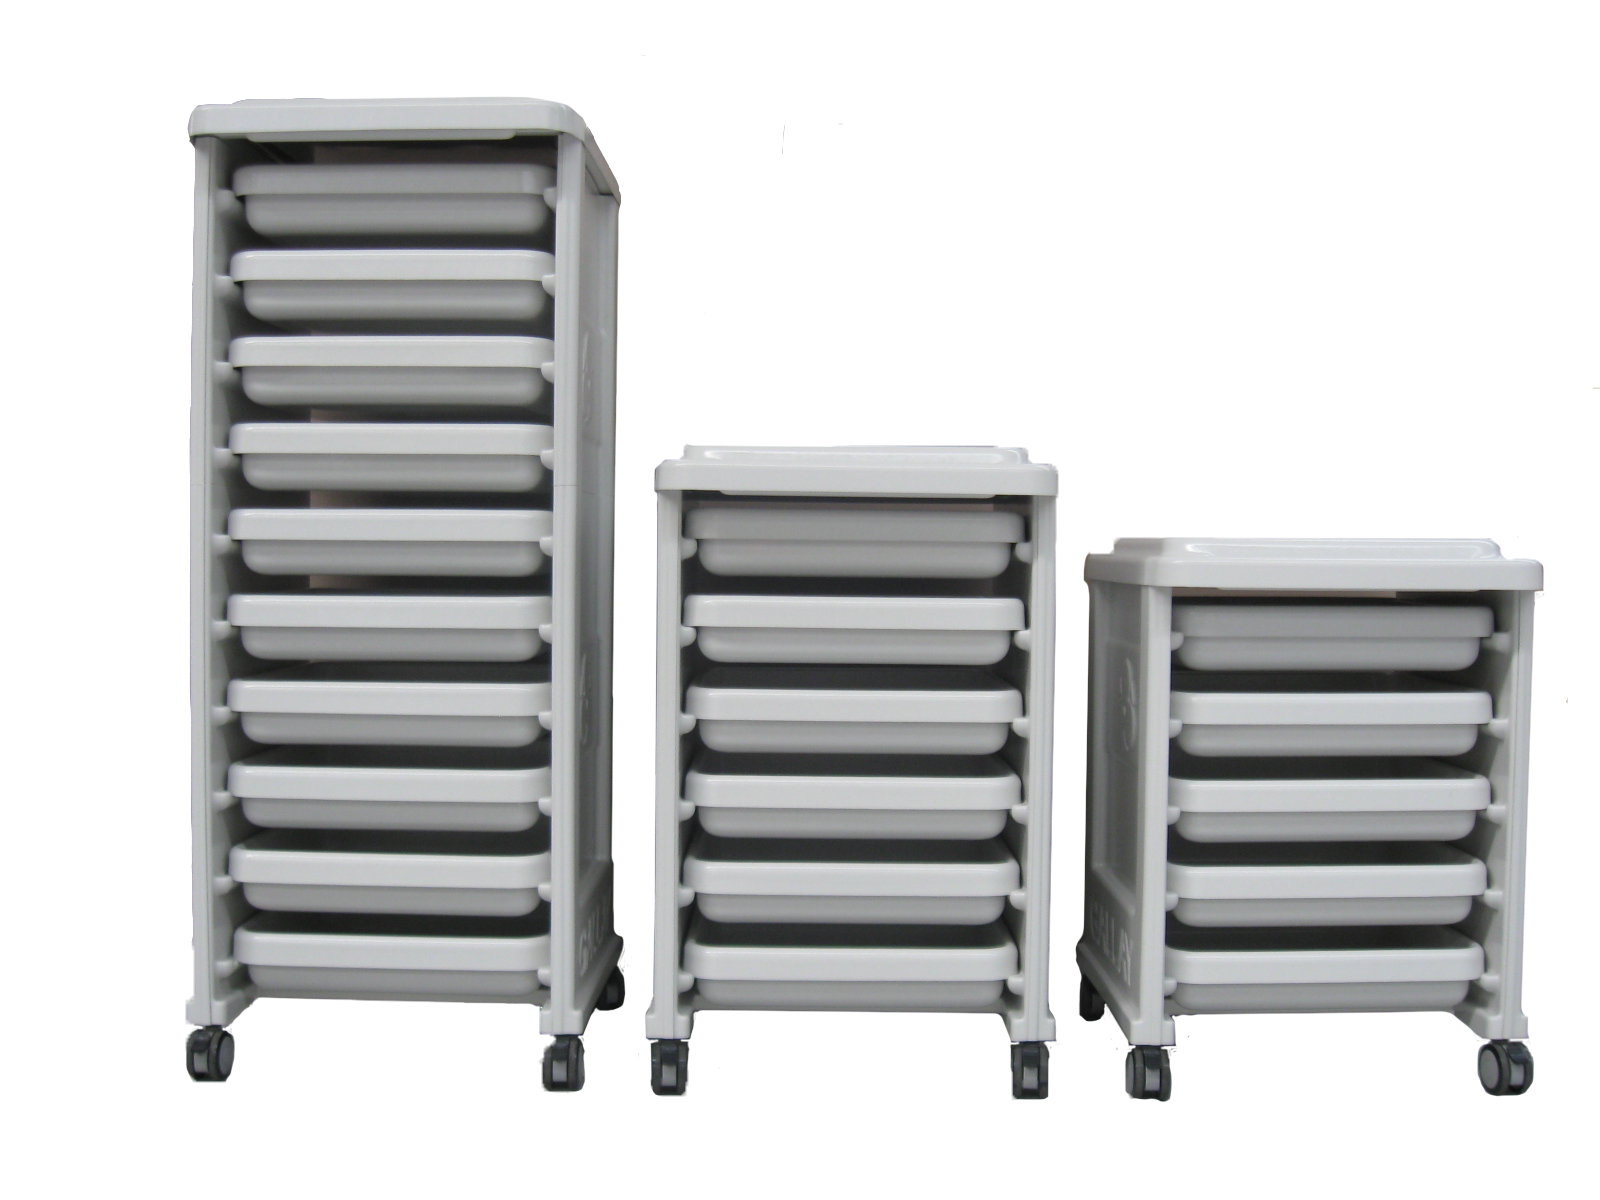 Endoscope transport storage